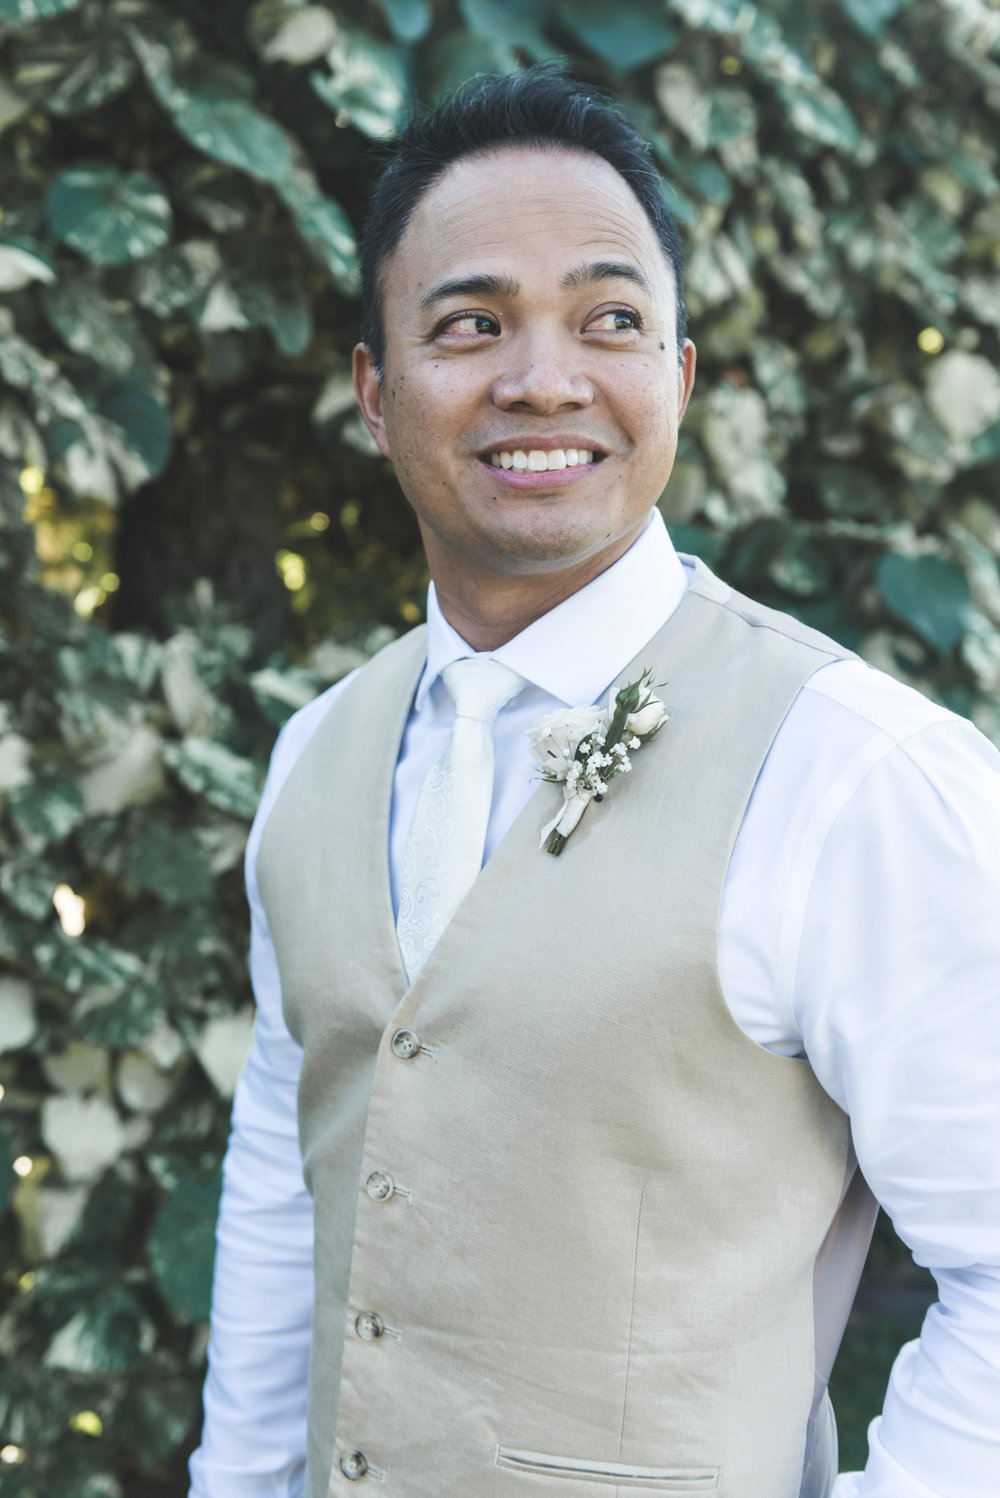 Maui groom smiling before Maui wedding